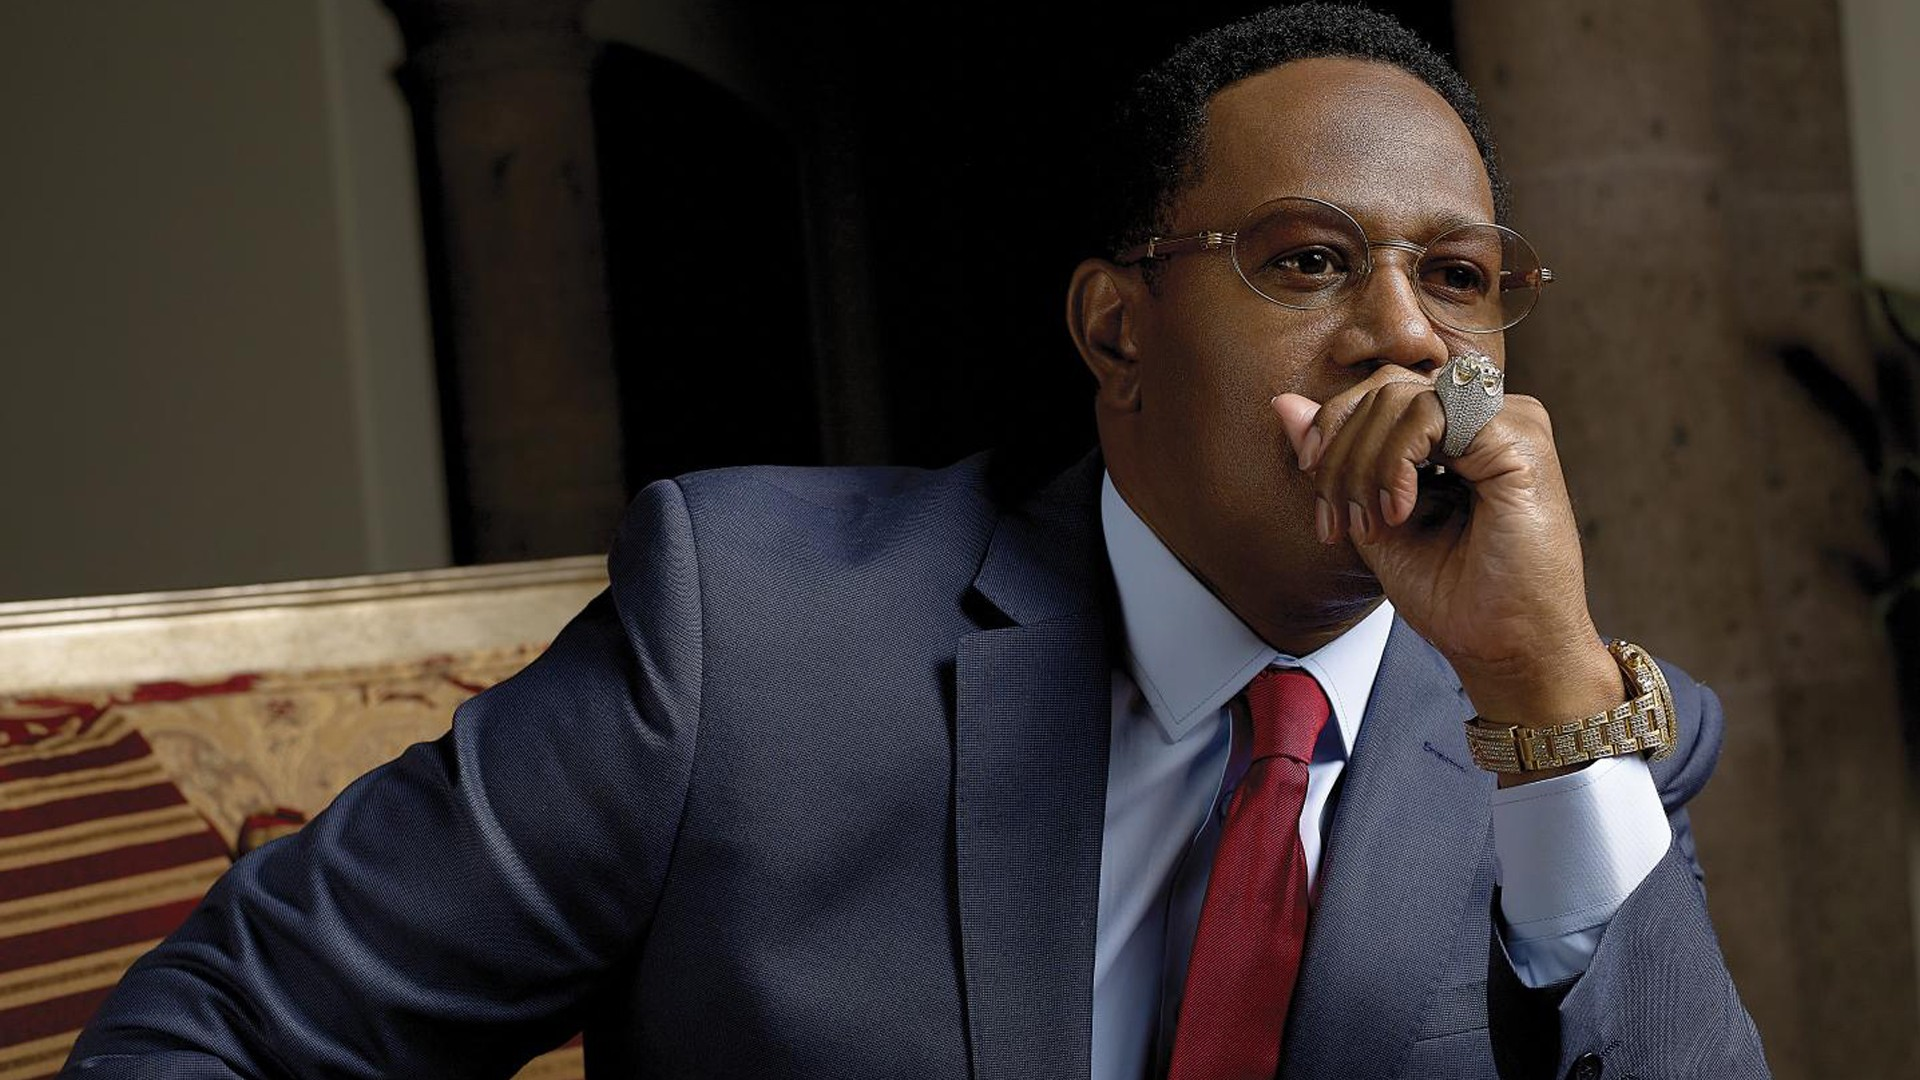 Exclusive: Master P On The Power Of HBCUs, Economic Empowerment And Generational Wealth